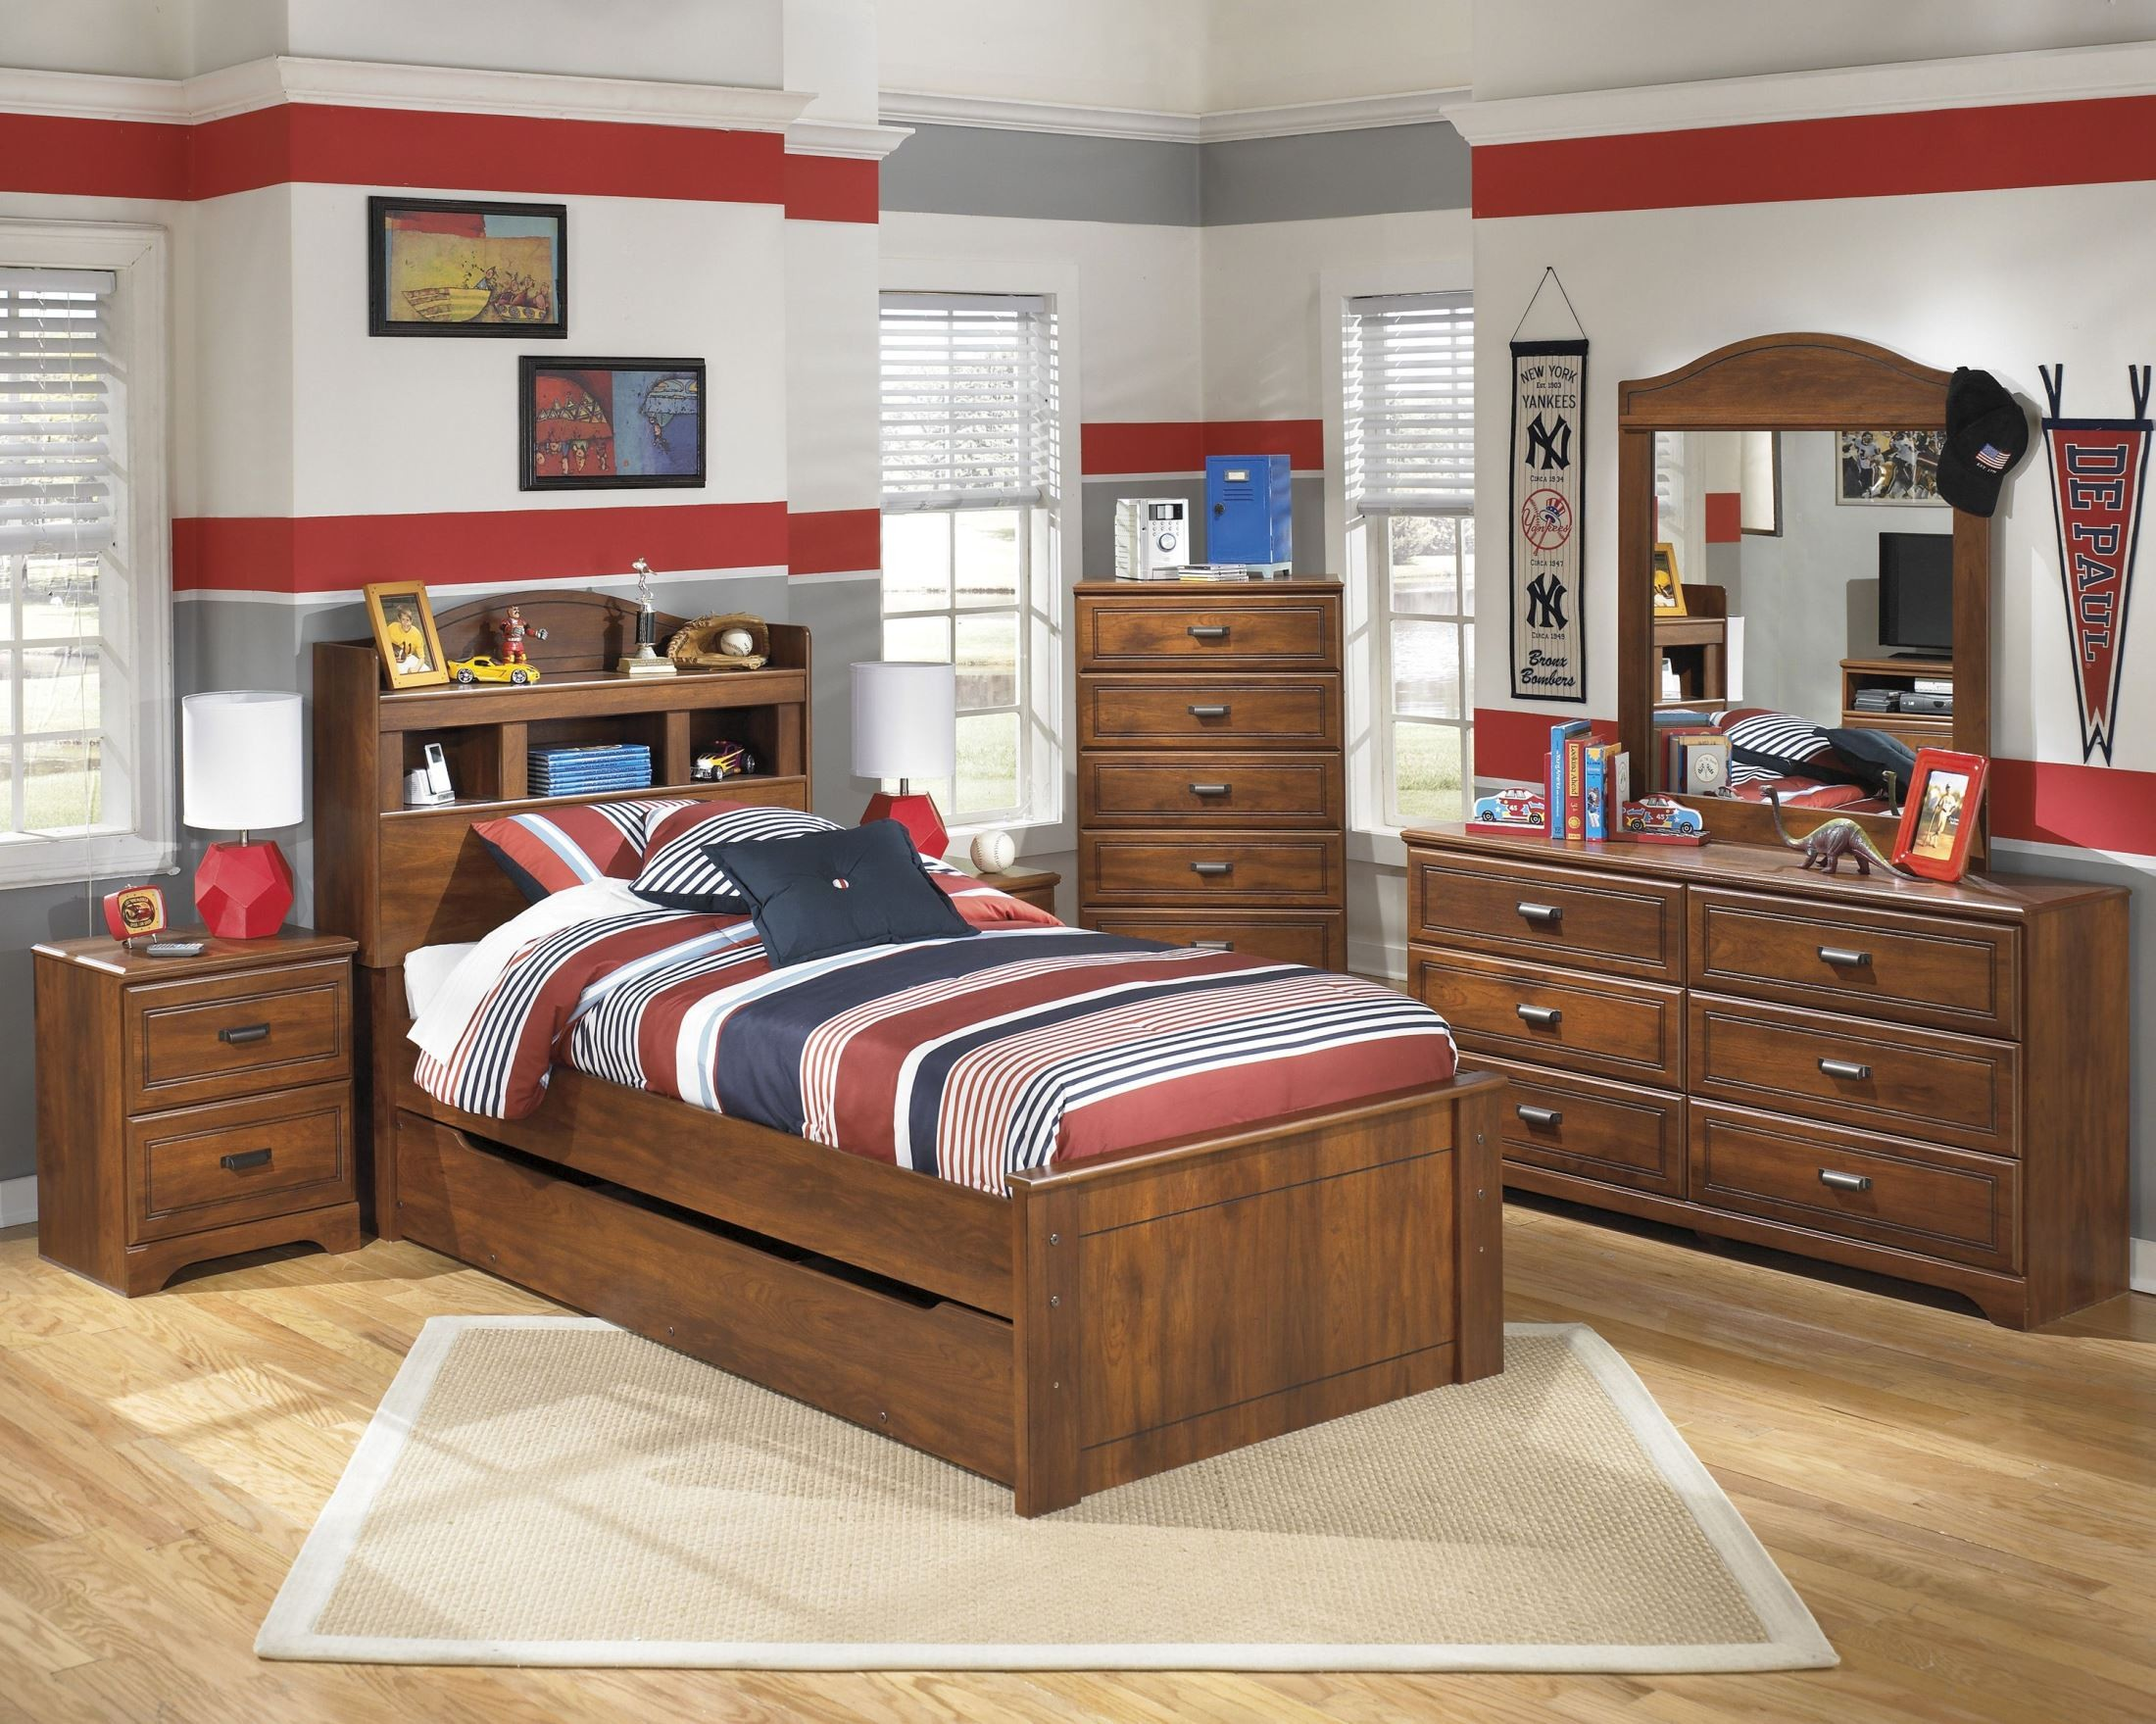 Barchan youth trundle bookcase bedroom set b228 63 52 82 - Youth bedroom furniture with storage ...